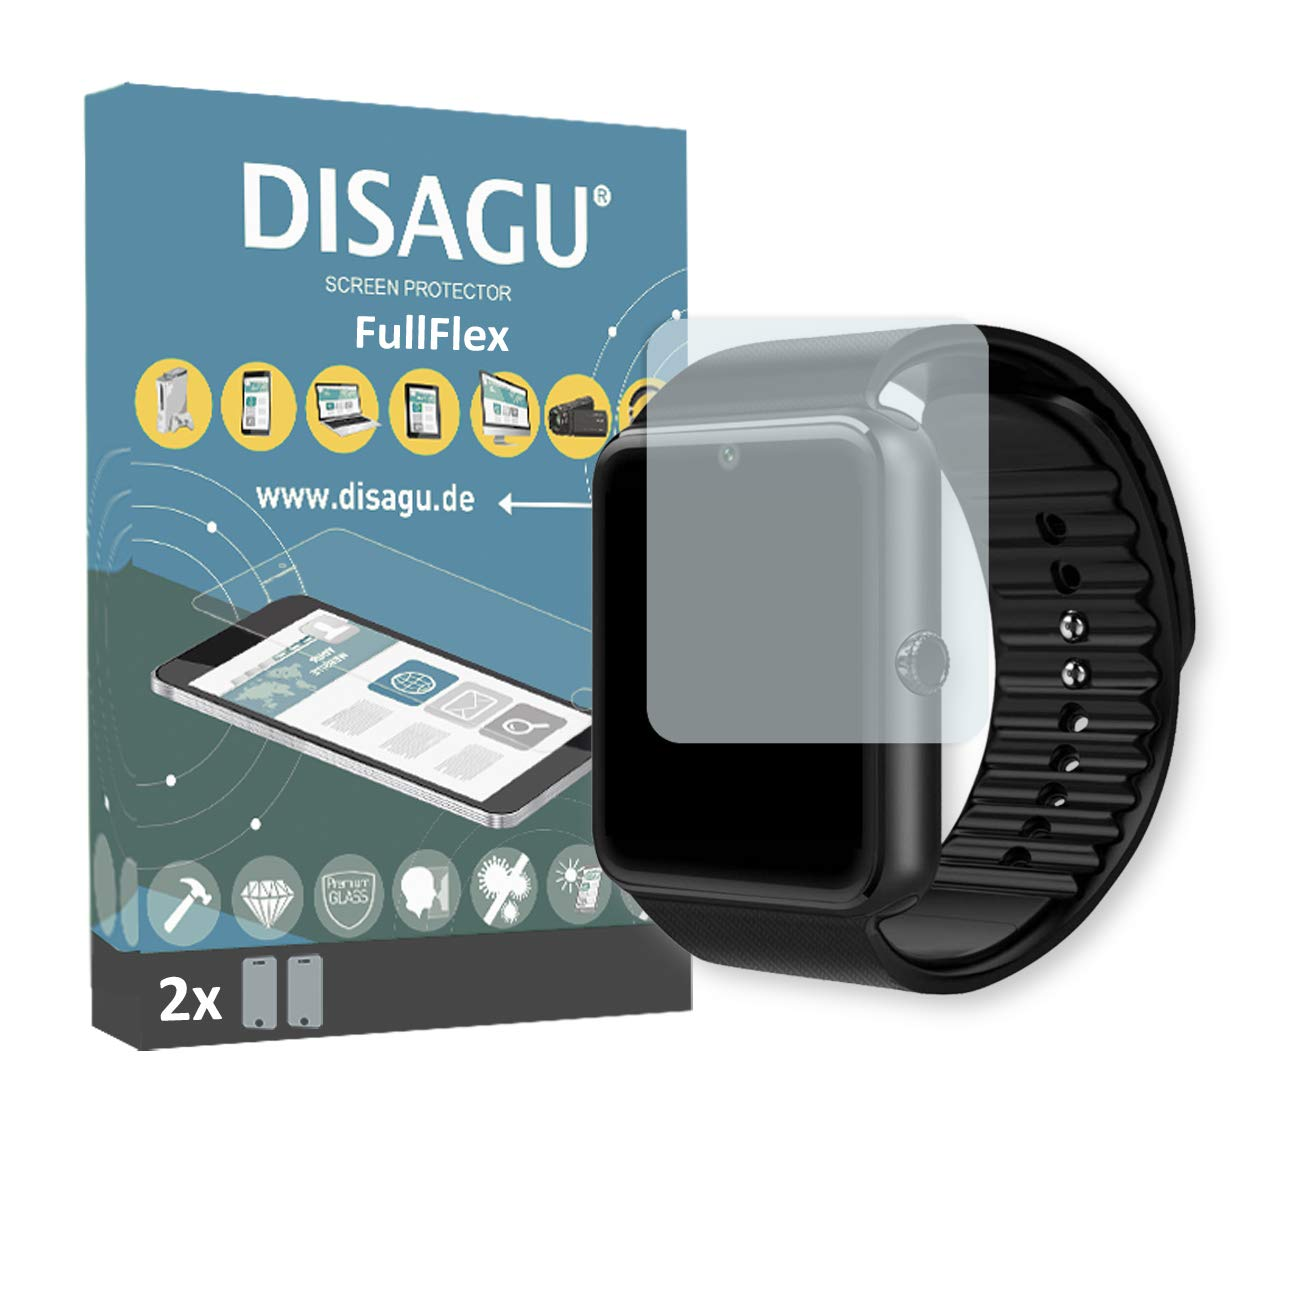 Amazon.com: DISAGU 2 x FullFlex Screen Protector for Yamay ...